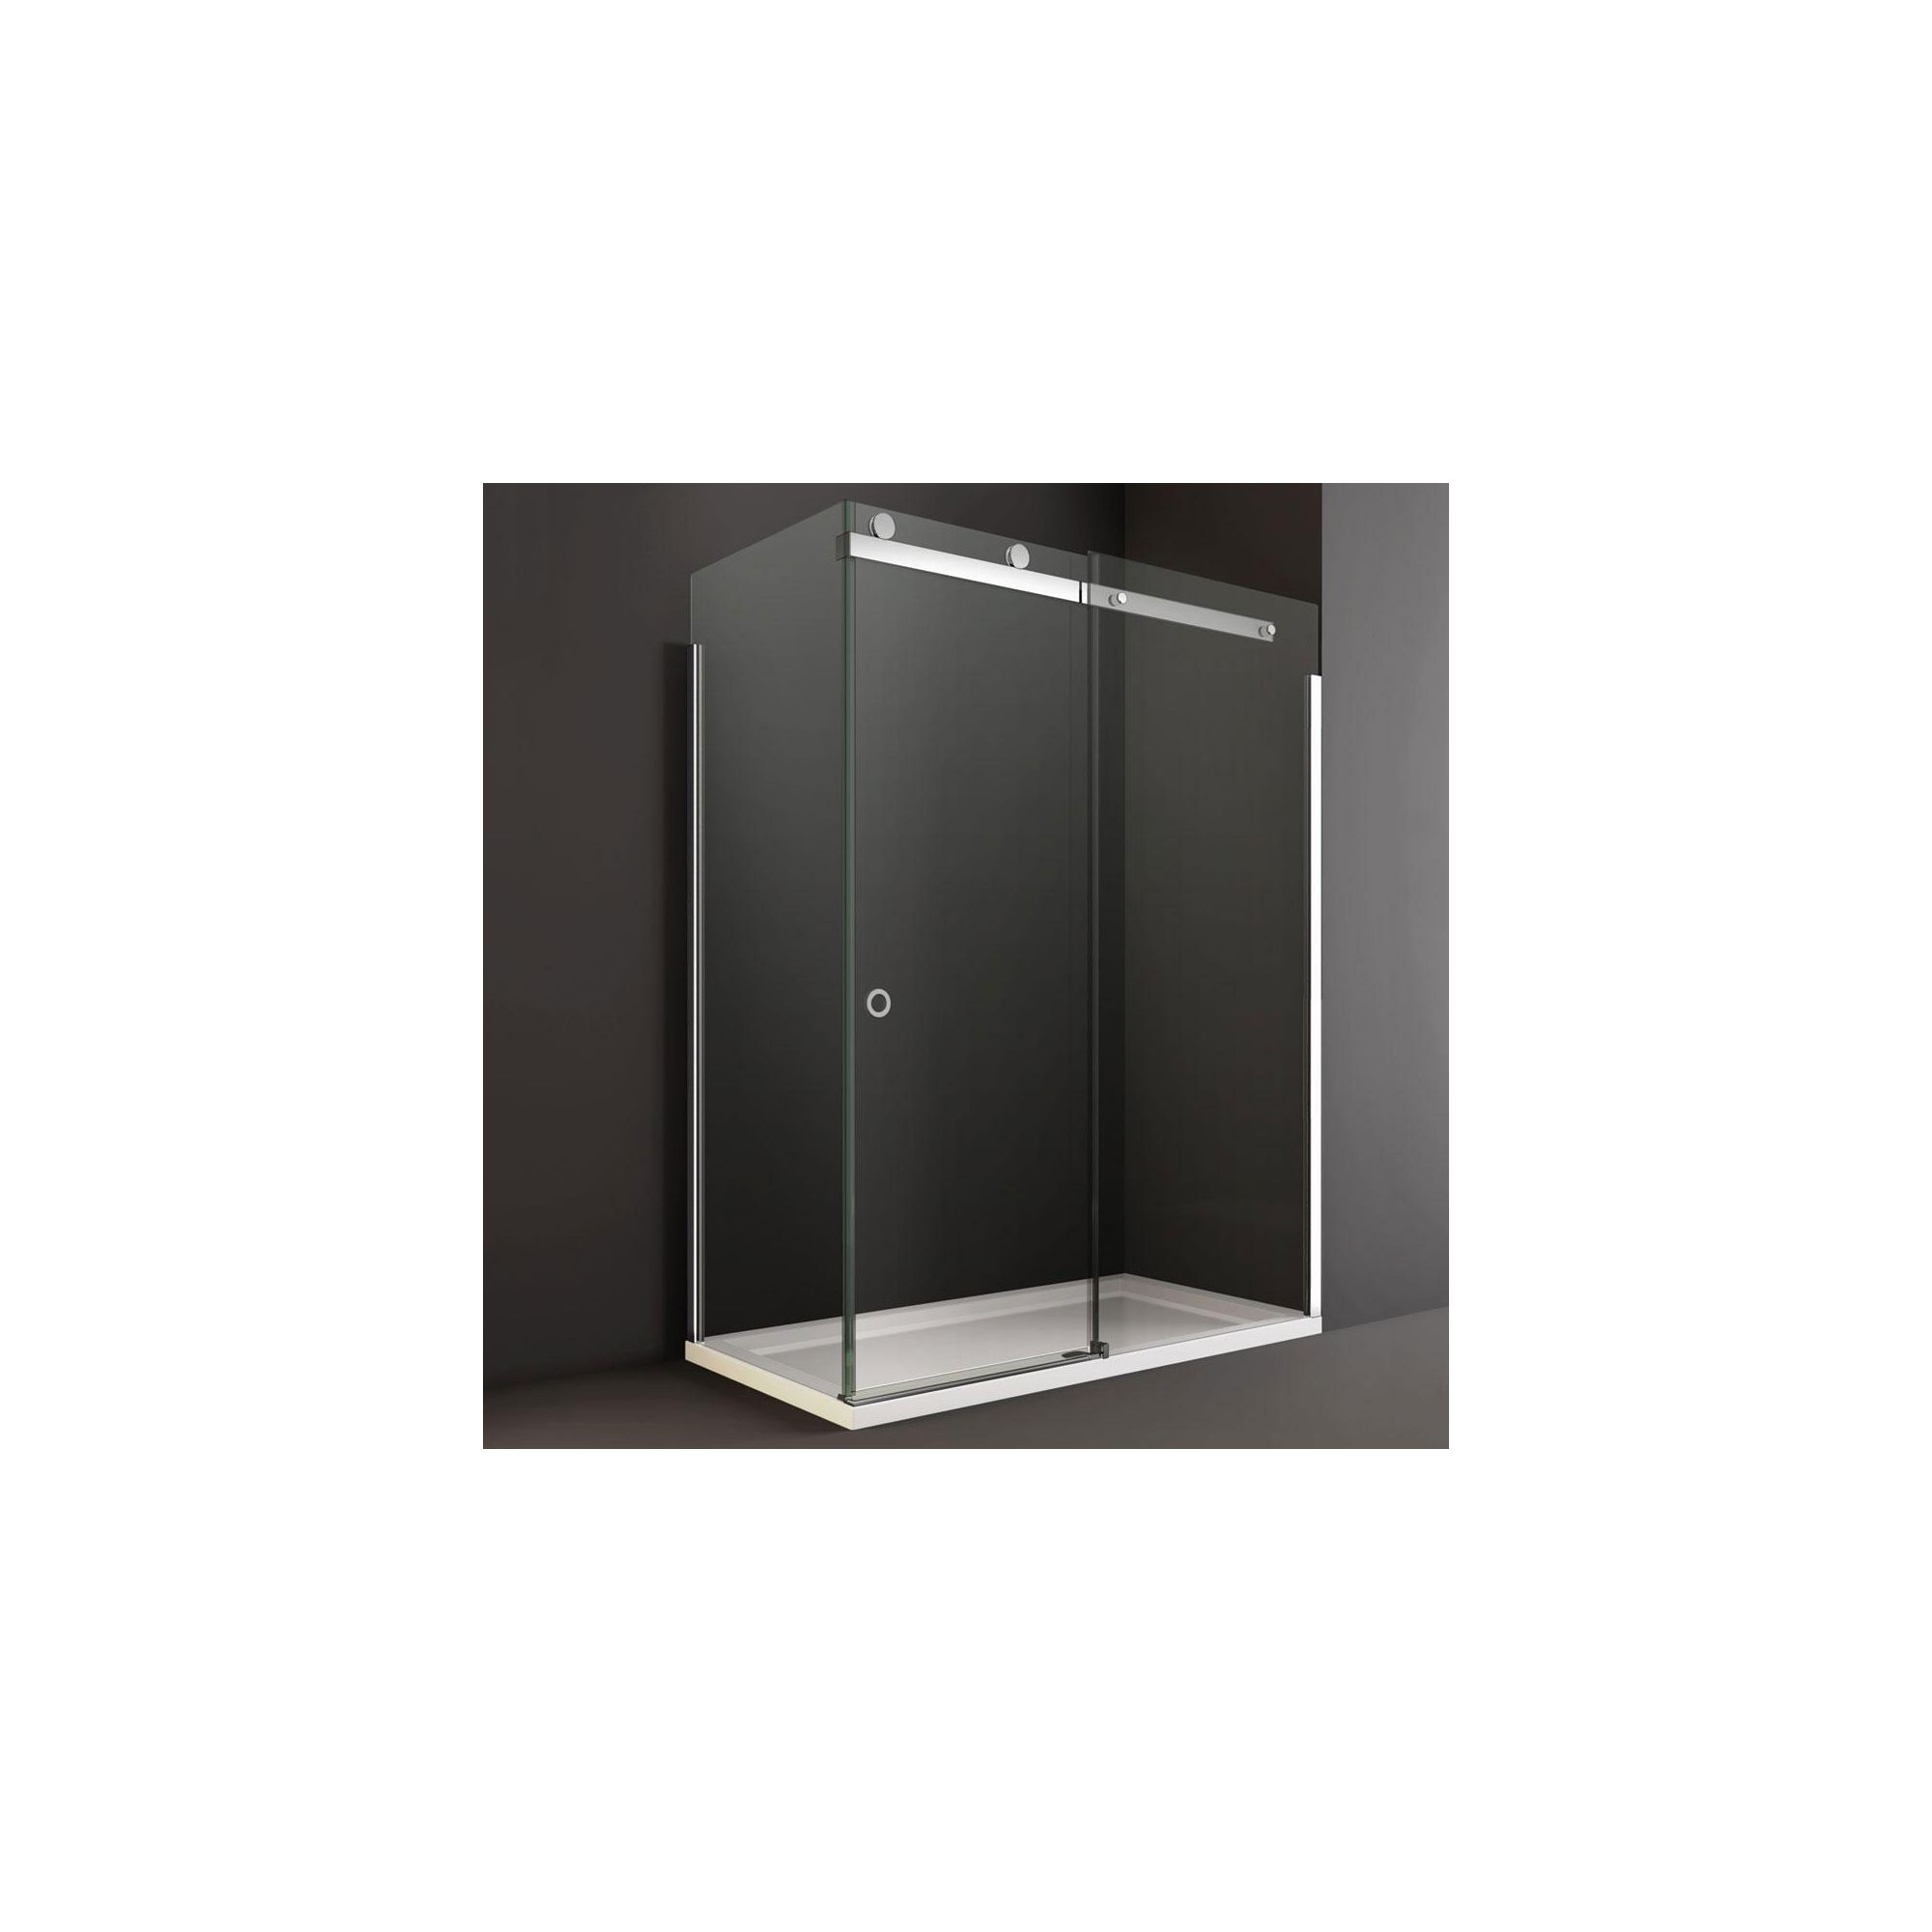 Merlyn Series 10 Sliding Shower Door, 1200mm Wide, 10mm Smoked Glass, Right Handed at Tesco Direct